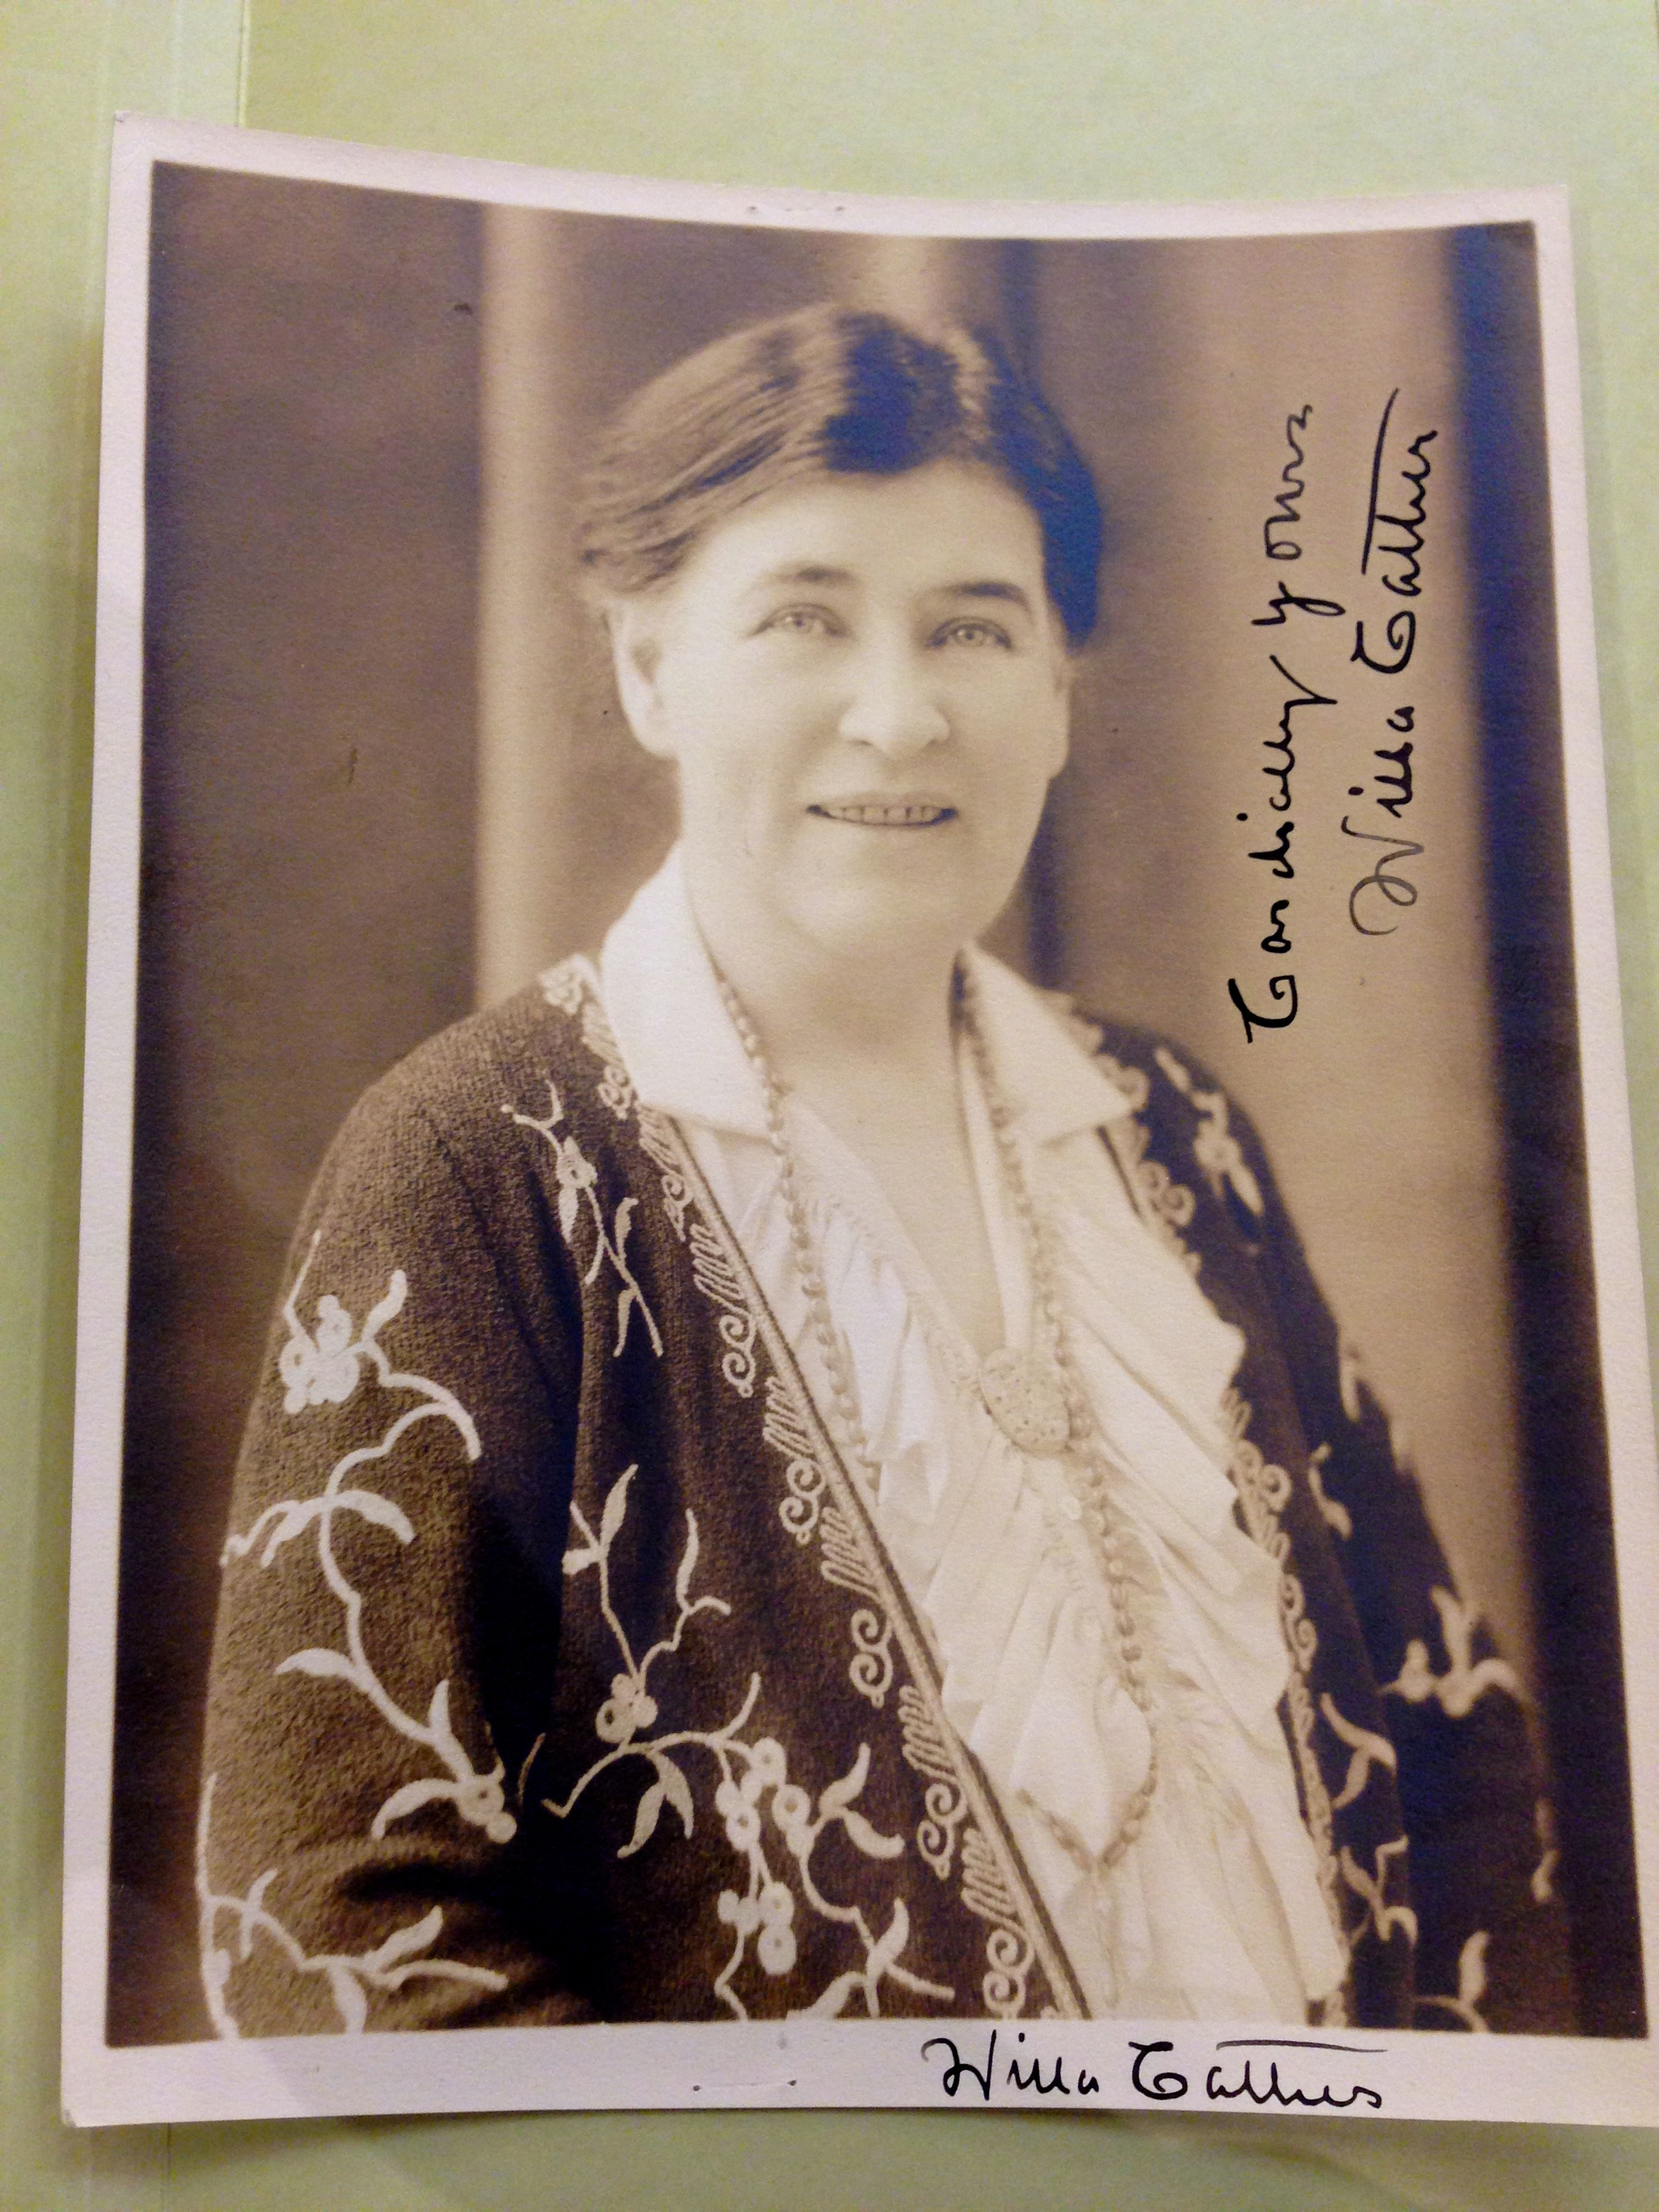 Double-signed photograph of Willa Cather, n.d. (Photograph by Emily Caldwell)